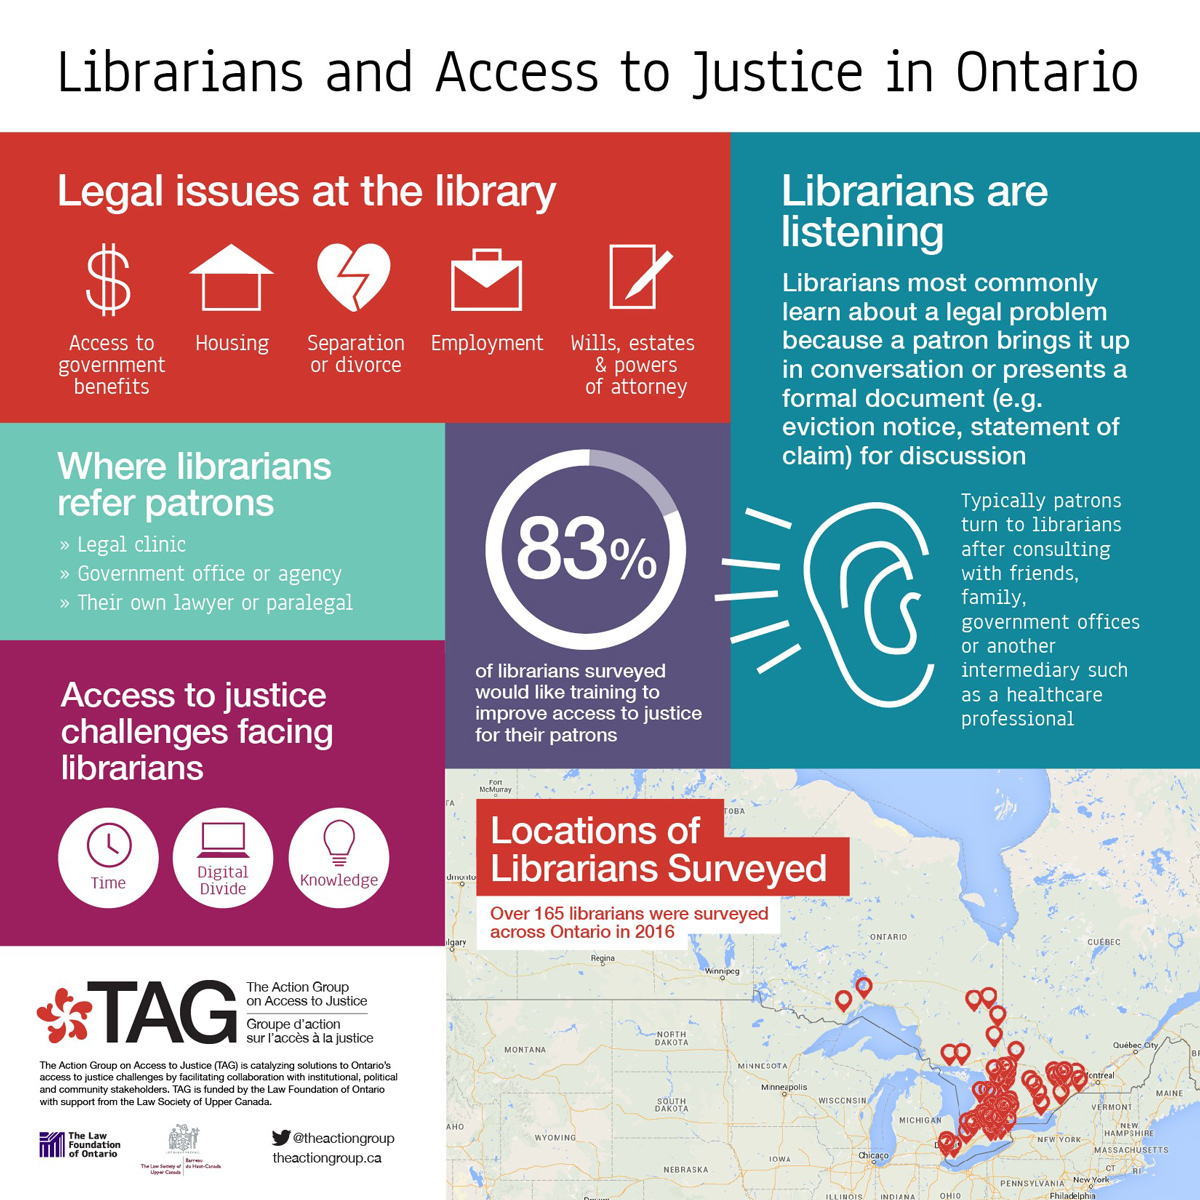 Librarians-and-Access-to-Justice-in-Ontario-Infographic